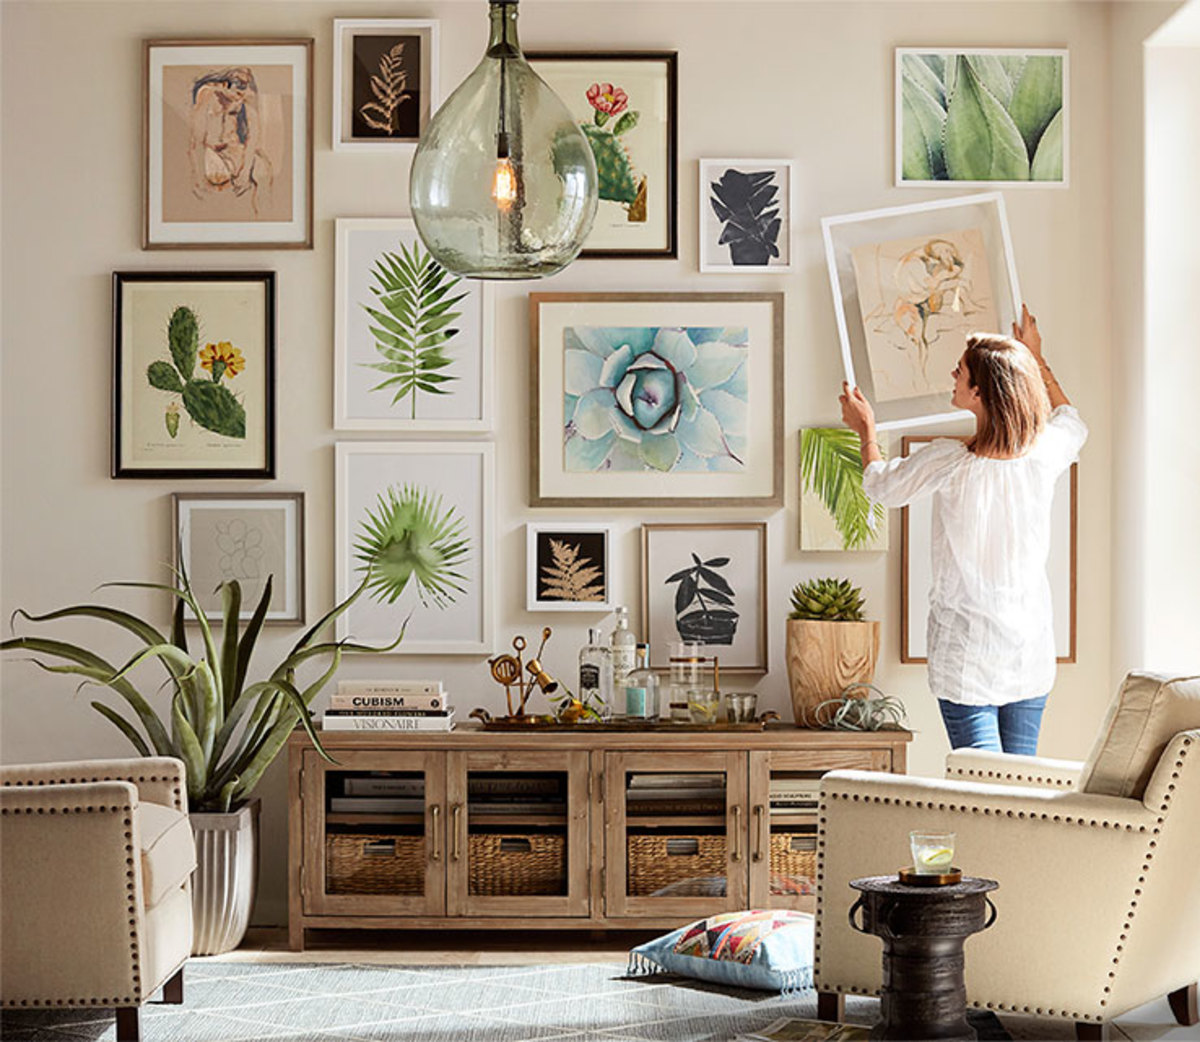 Once you've followed these four simple steps you'll end up with a perfect gallery wall.